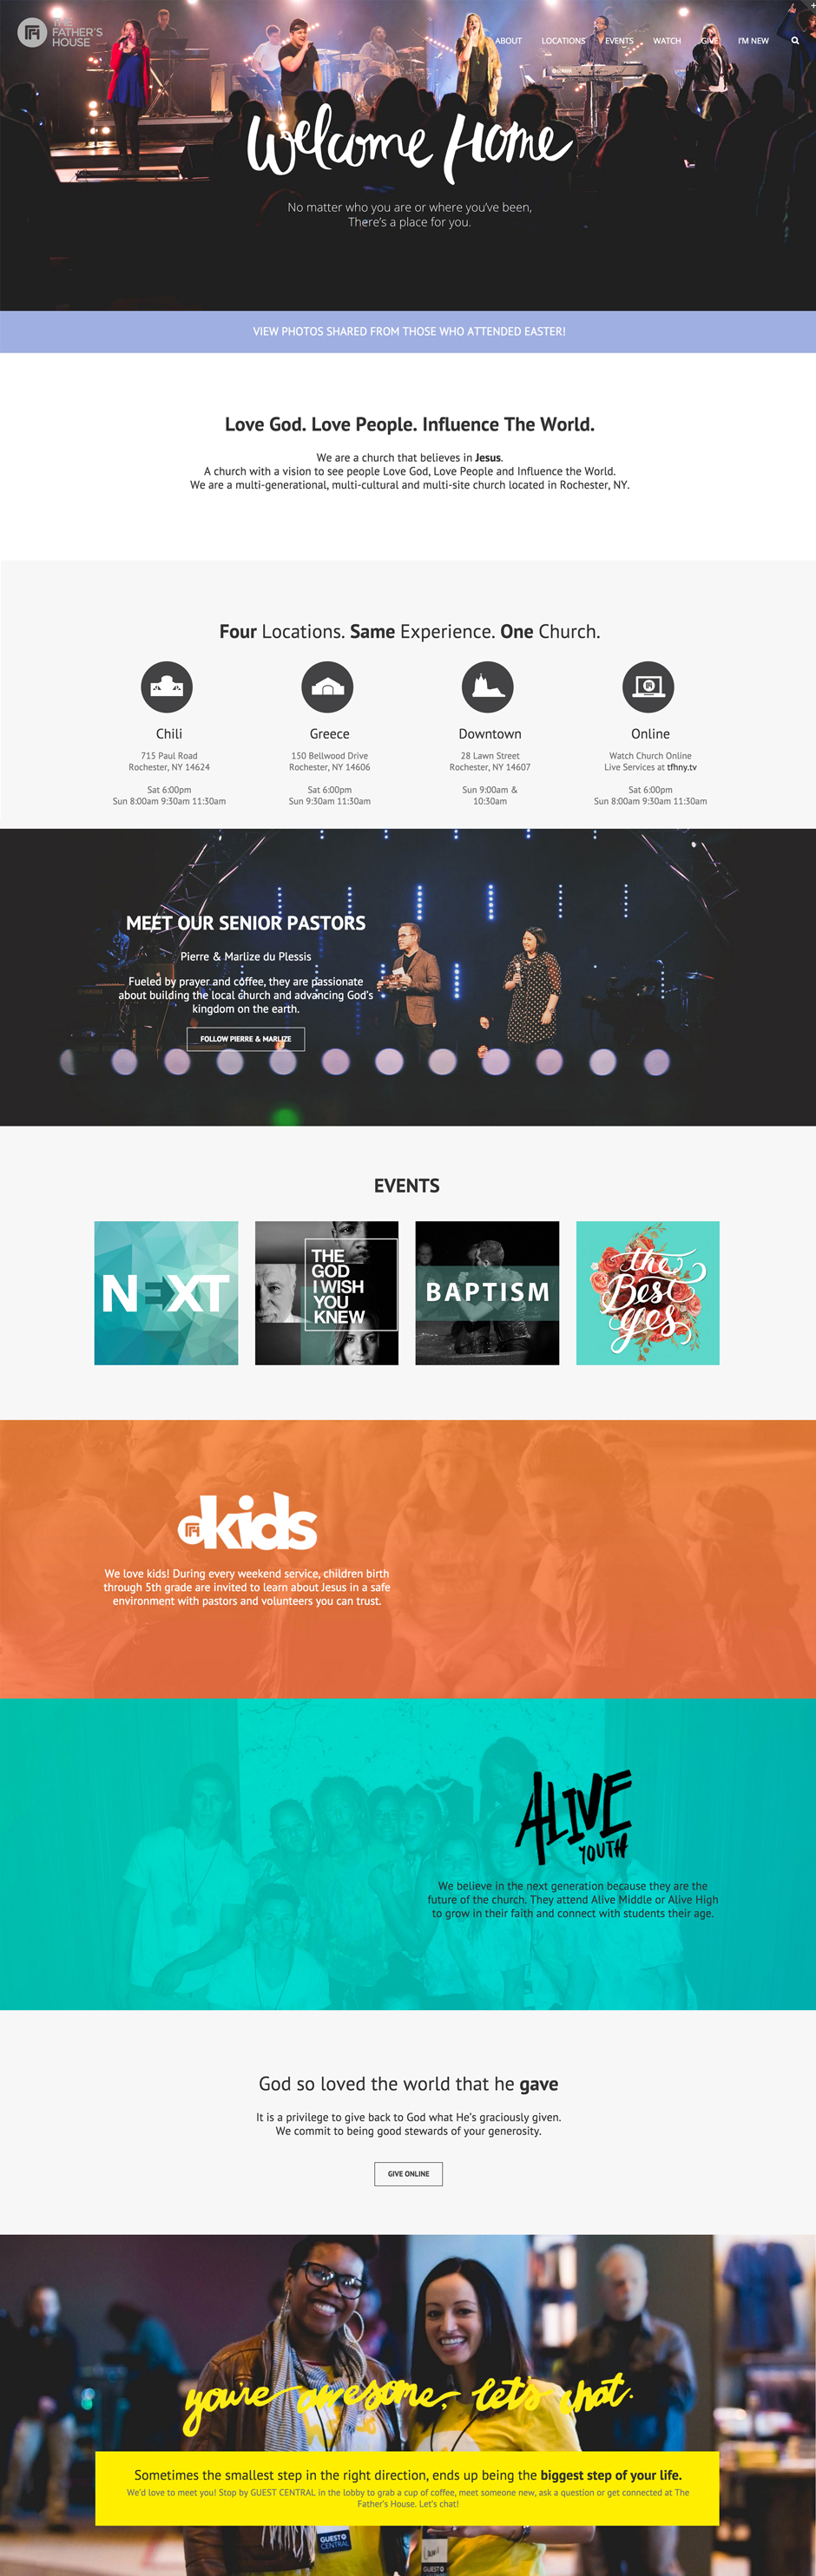 overall look - Church Website Design Ideas